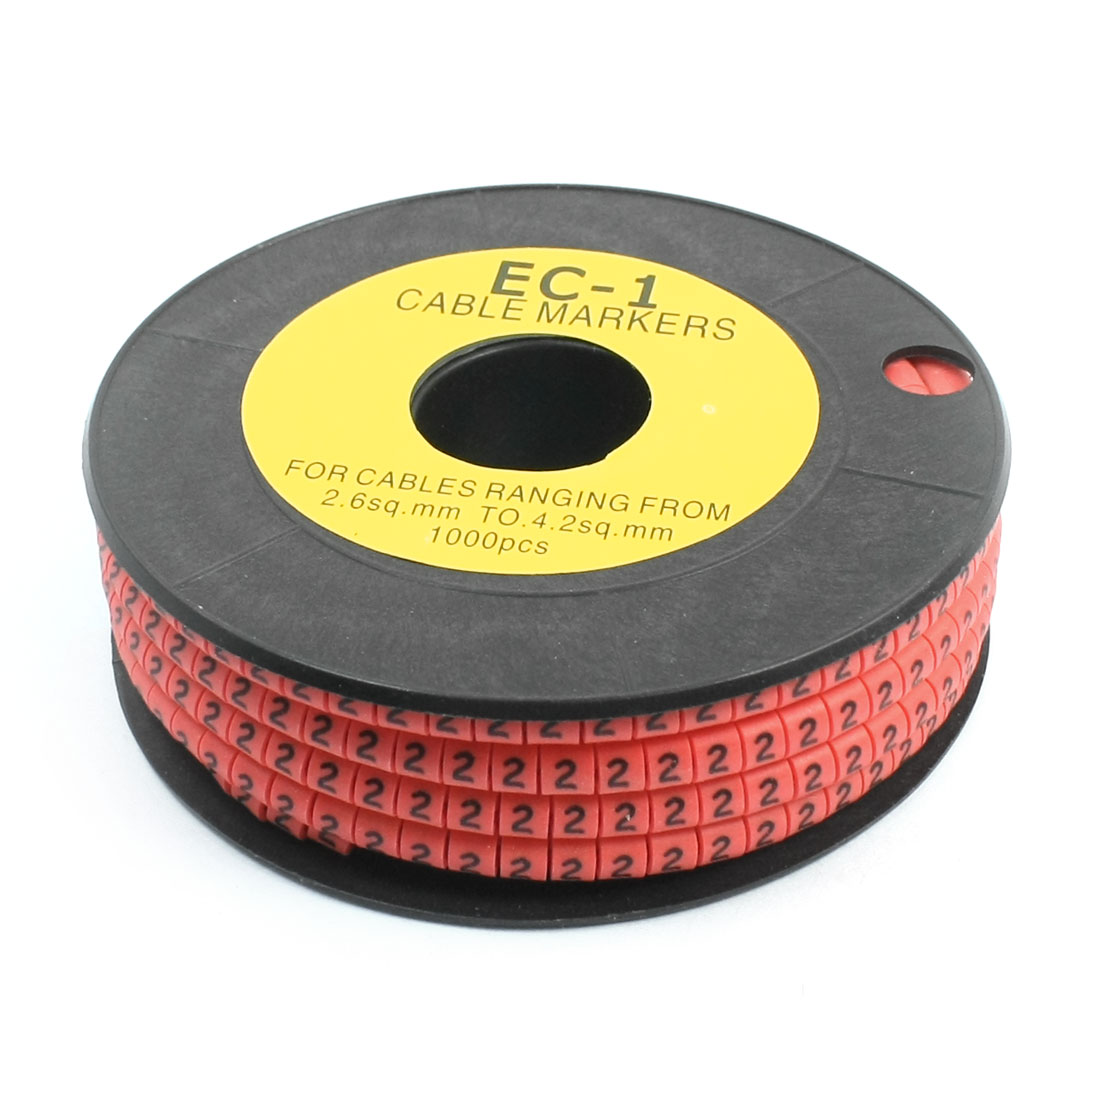 1000Pcs EC-1 Arabic Numeral 2 Print Pink Flexible PVC Concave Shape Wire Cable Markers Roll for 2.6-4.2mm2 Tube Label